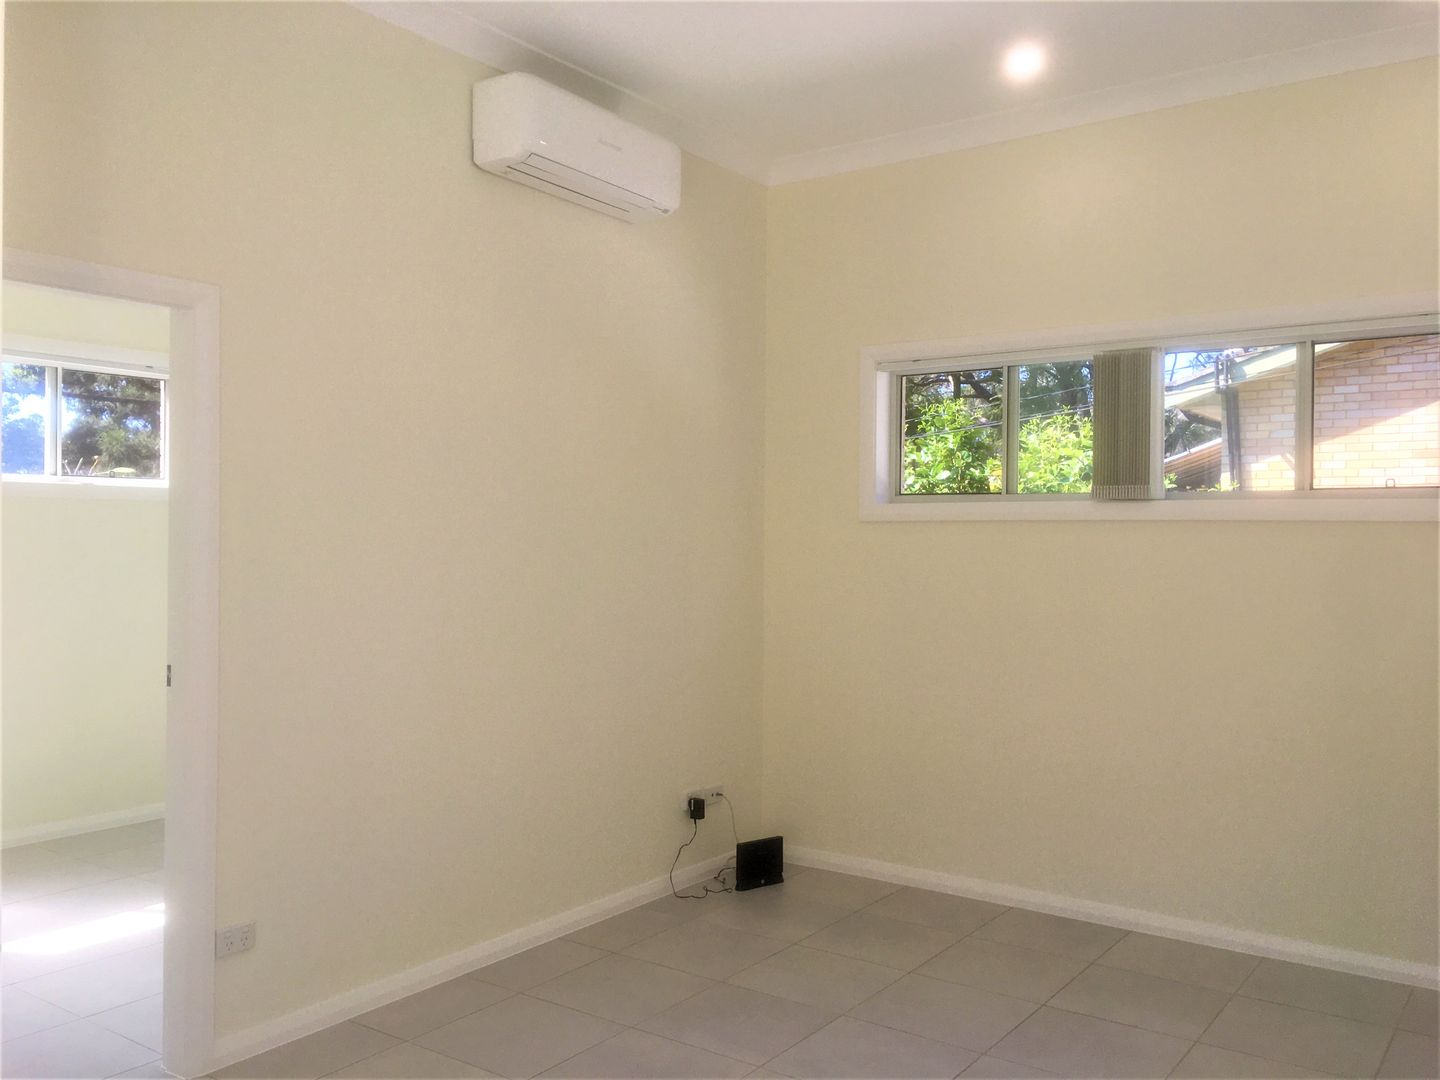 21 A George street, Pennant Hills NSW 2120, Image 1